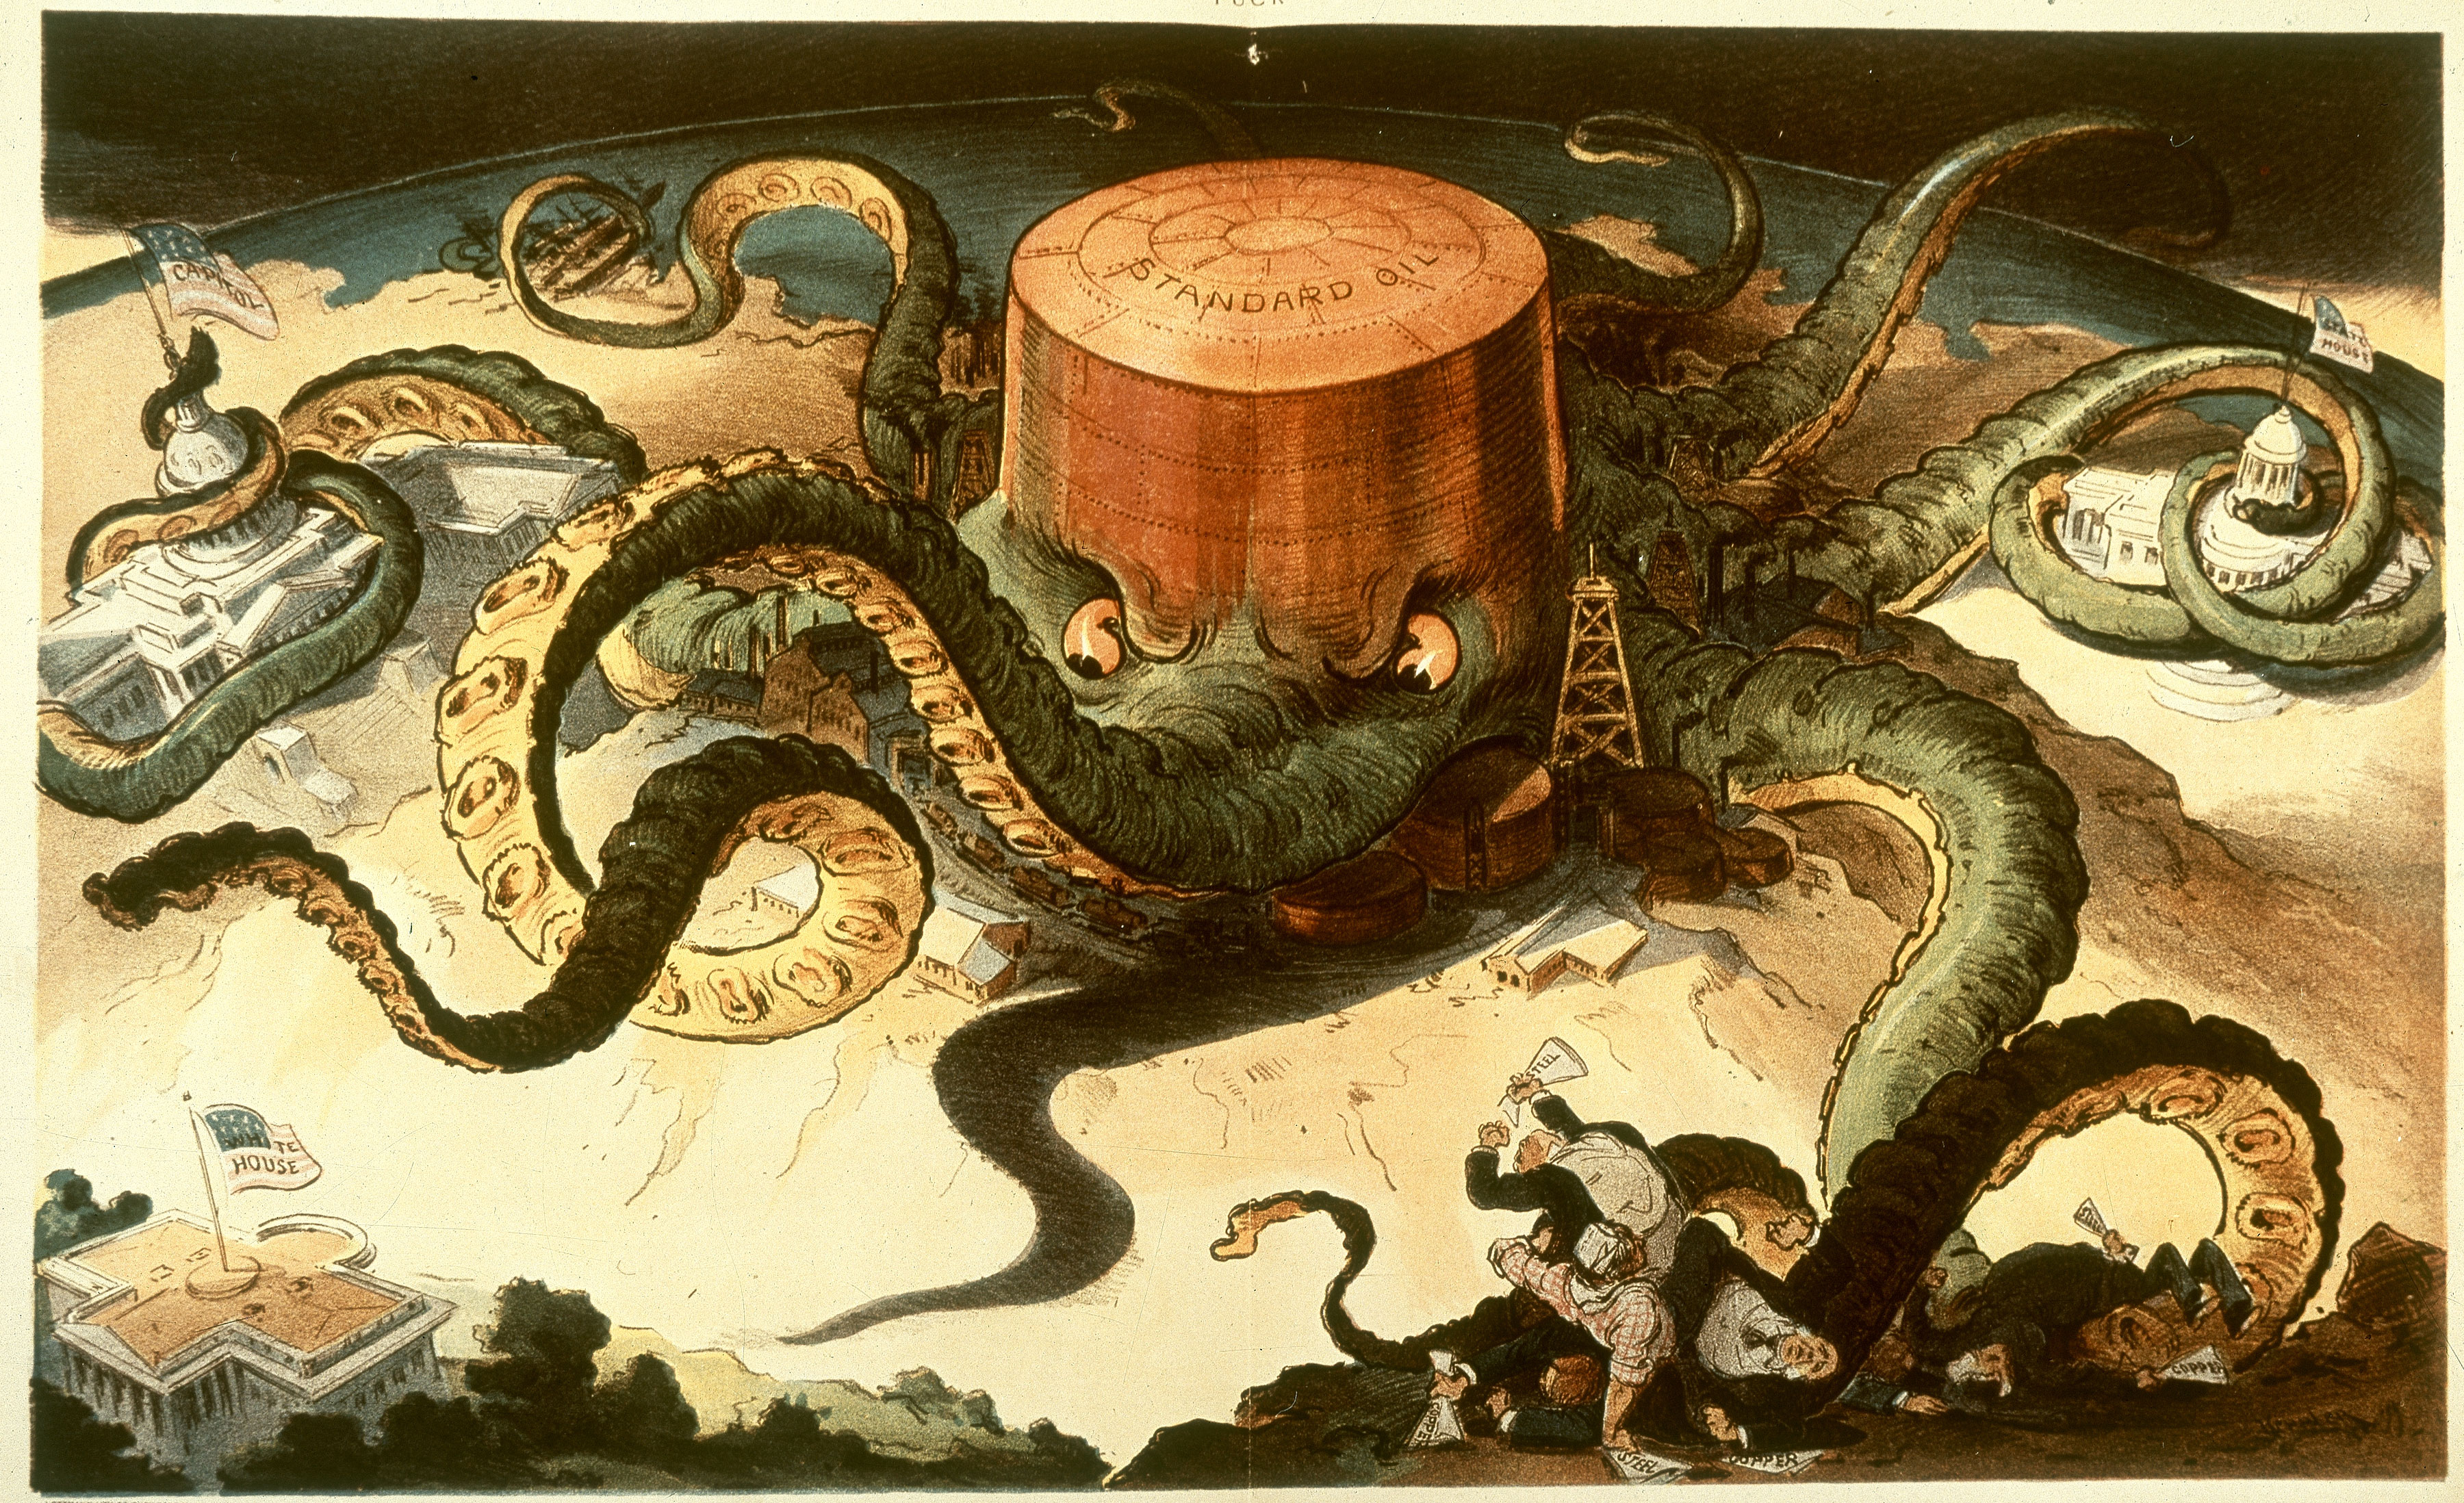 Standard oil octopus political cartoon, 1904